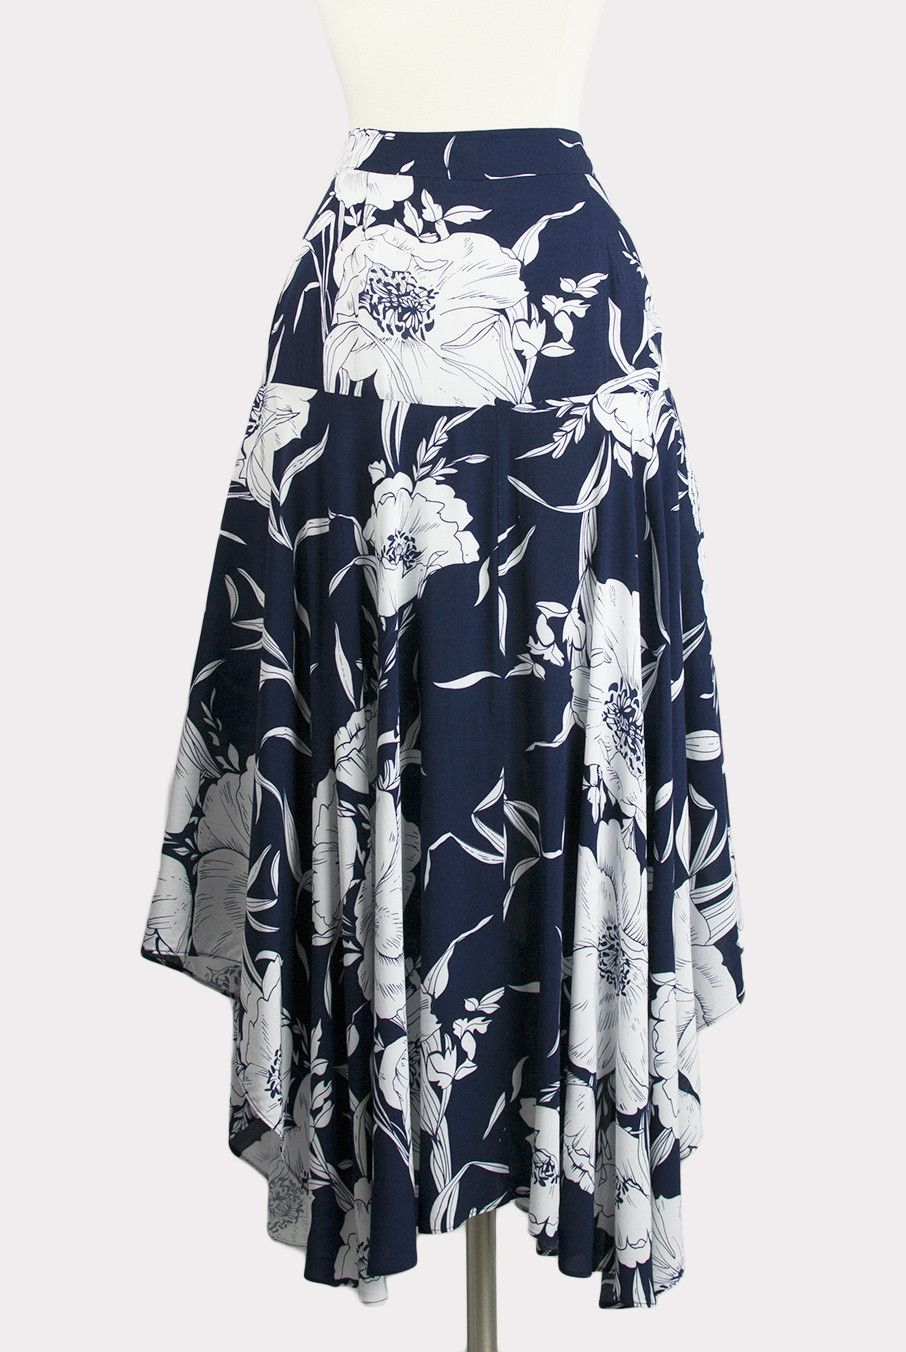 f5492352c This item is Final Sale. Navy blue skirt with white over-size floral print,  asymmetric hemline and hidden side zip closure. Partially lined.